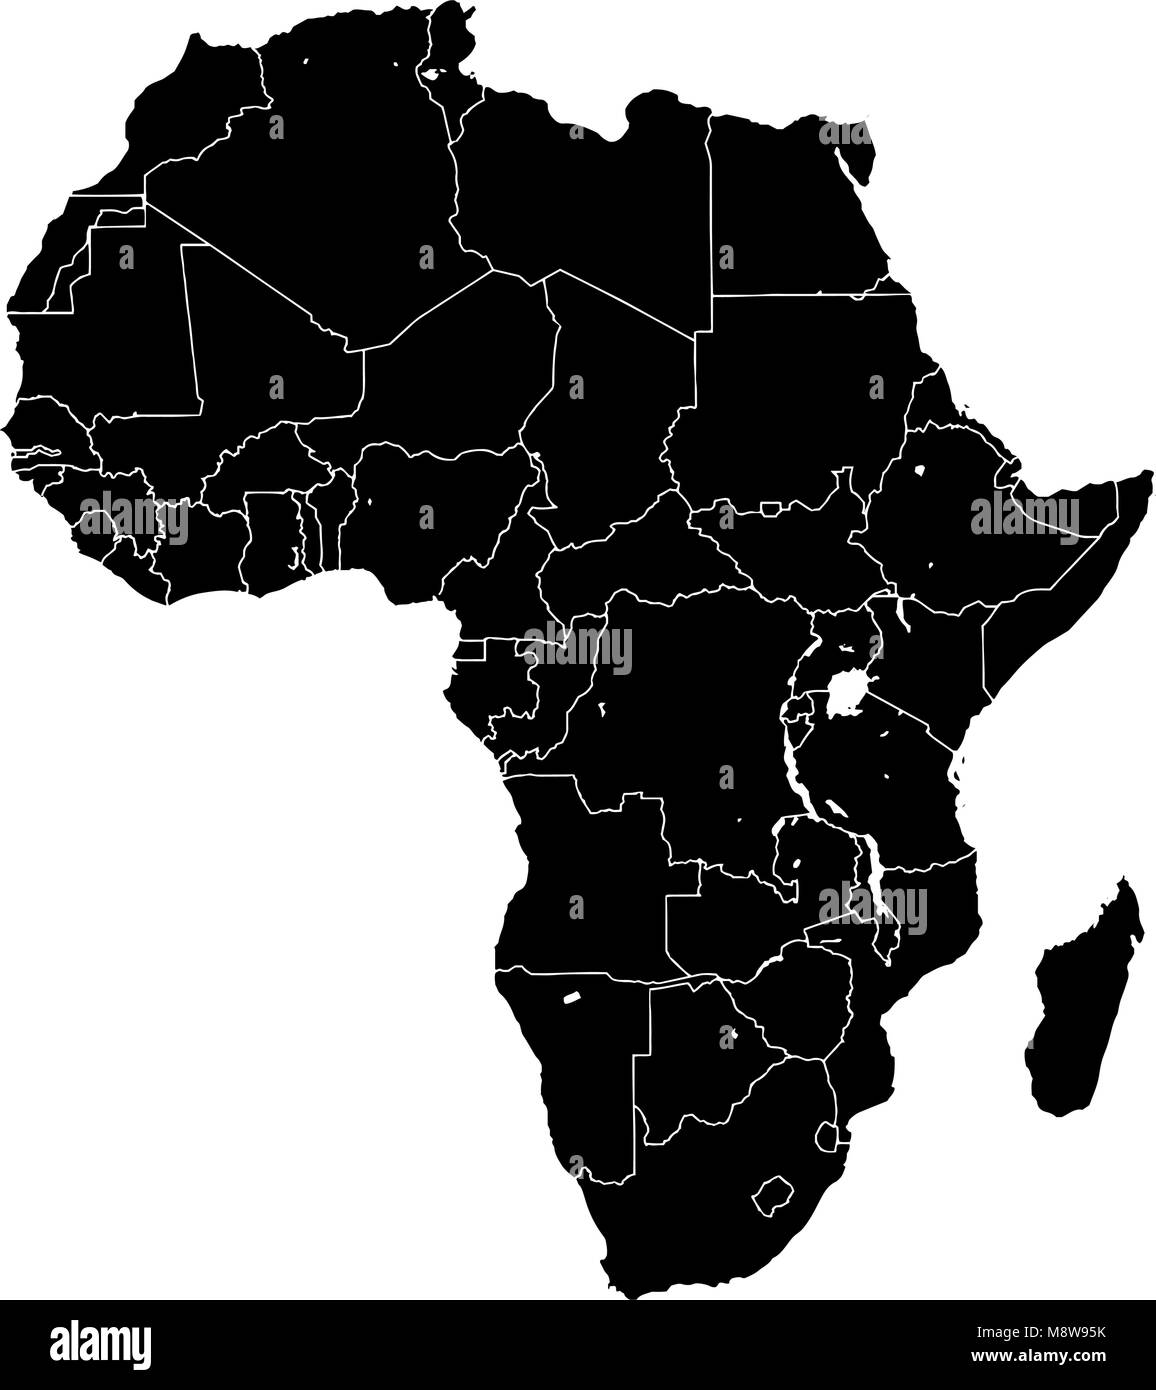 Africa silhouette vector map black and white version usable for travel marketing real estate and education